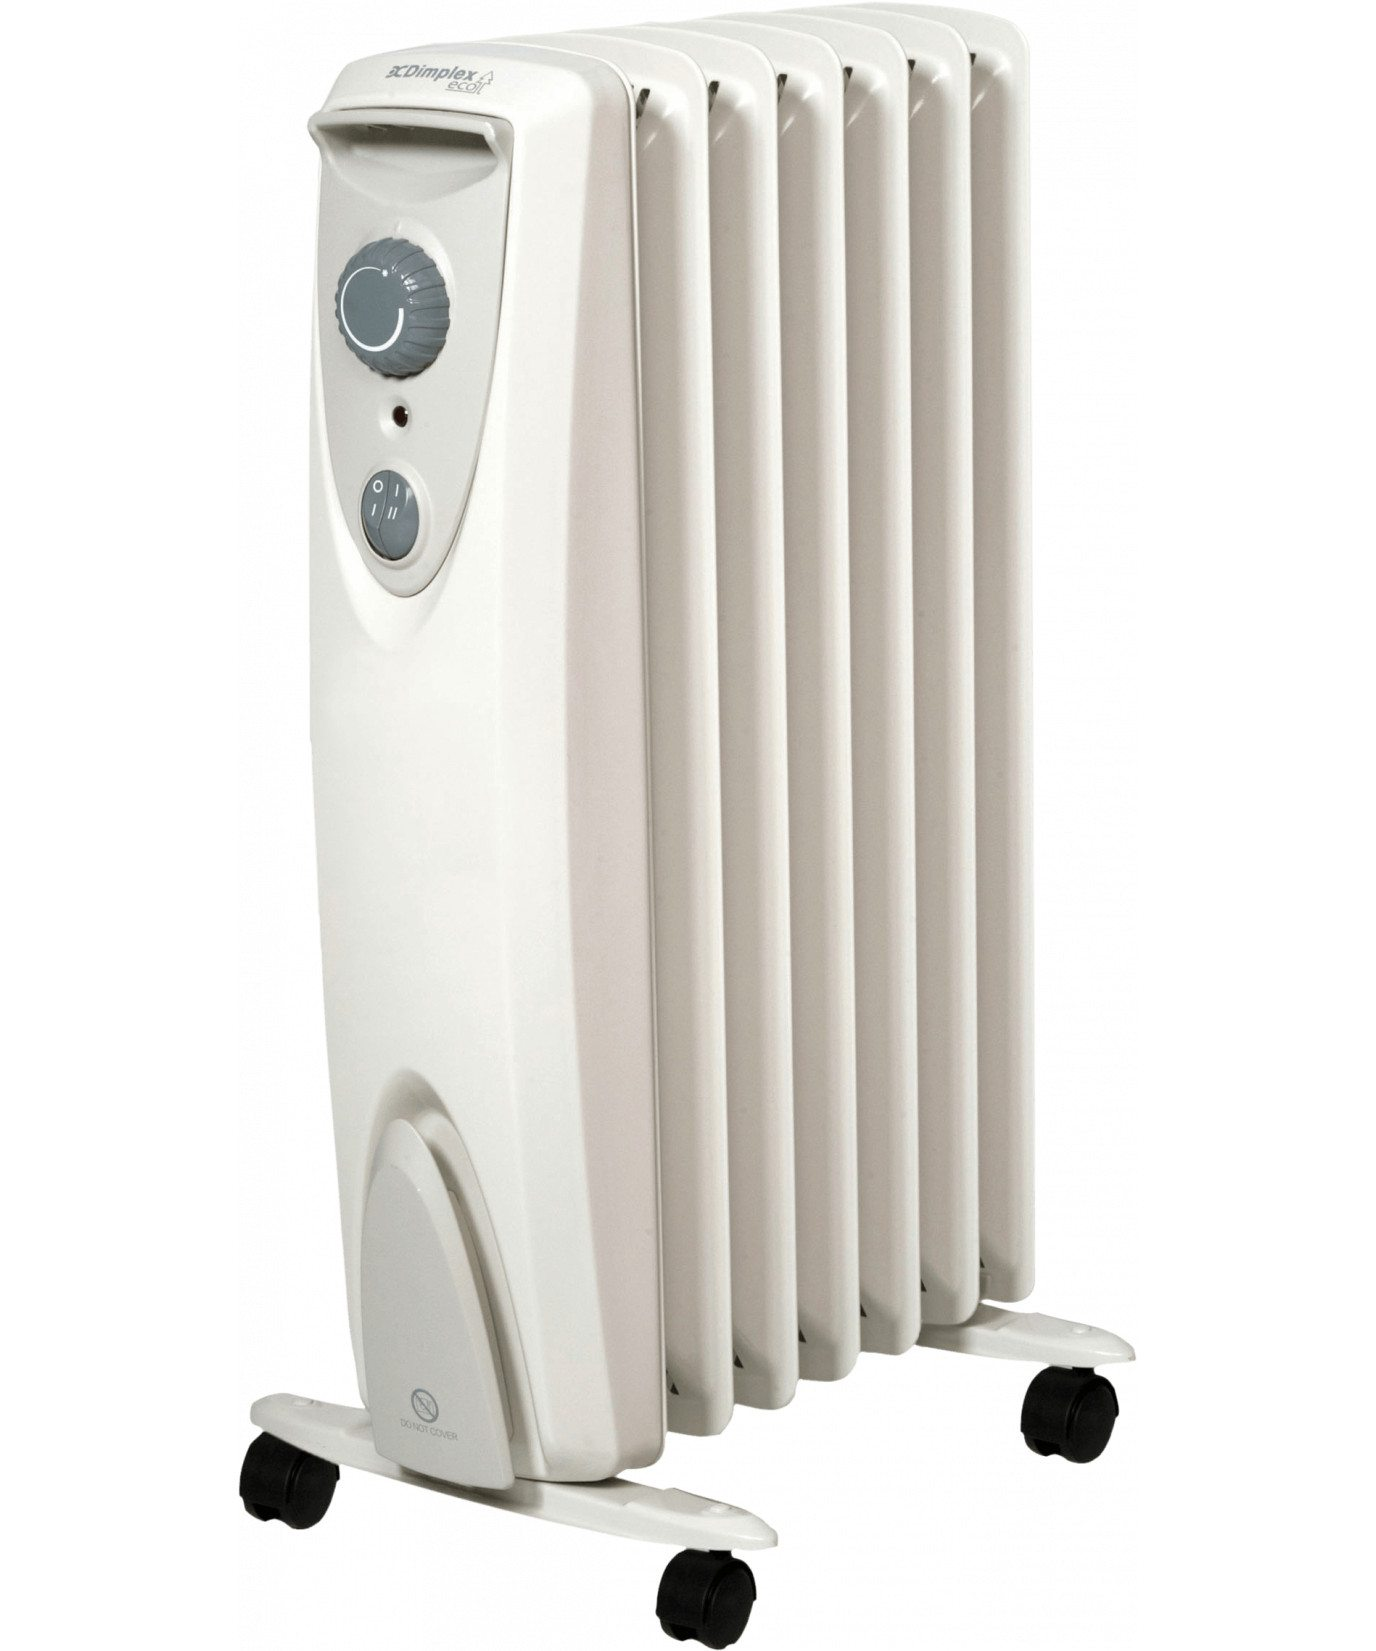 1.5kW Oil Free Column Radiator